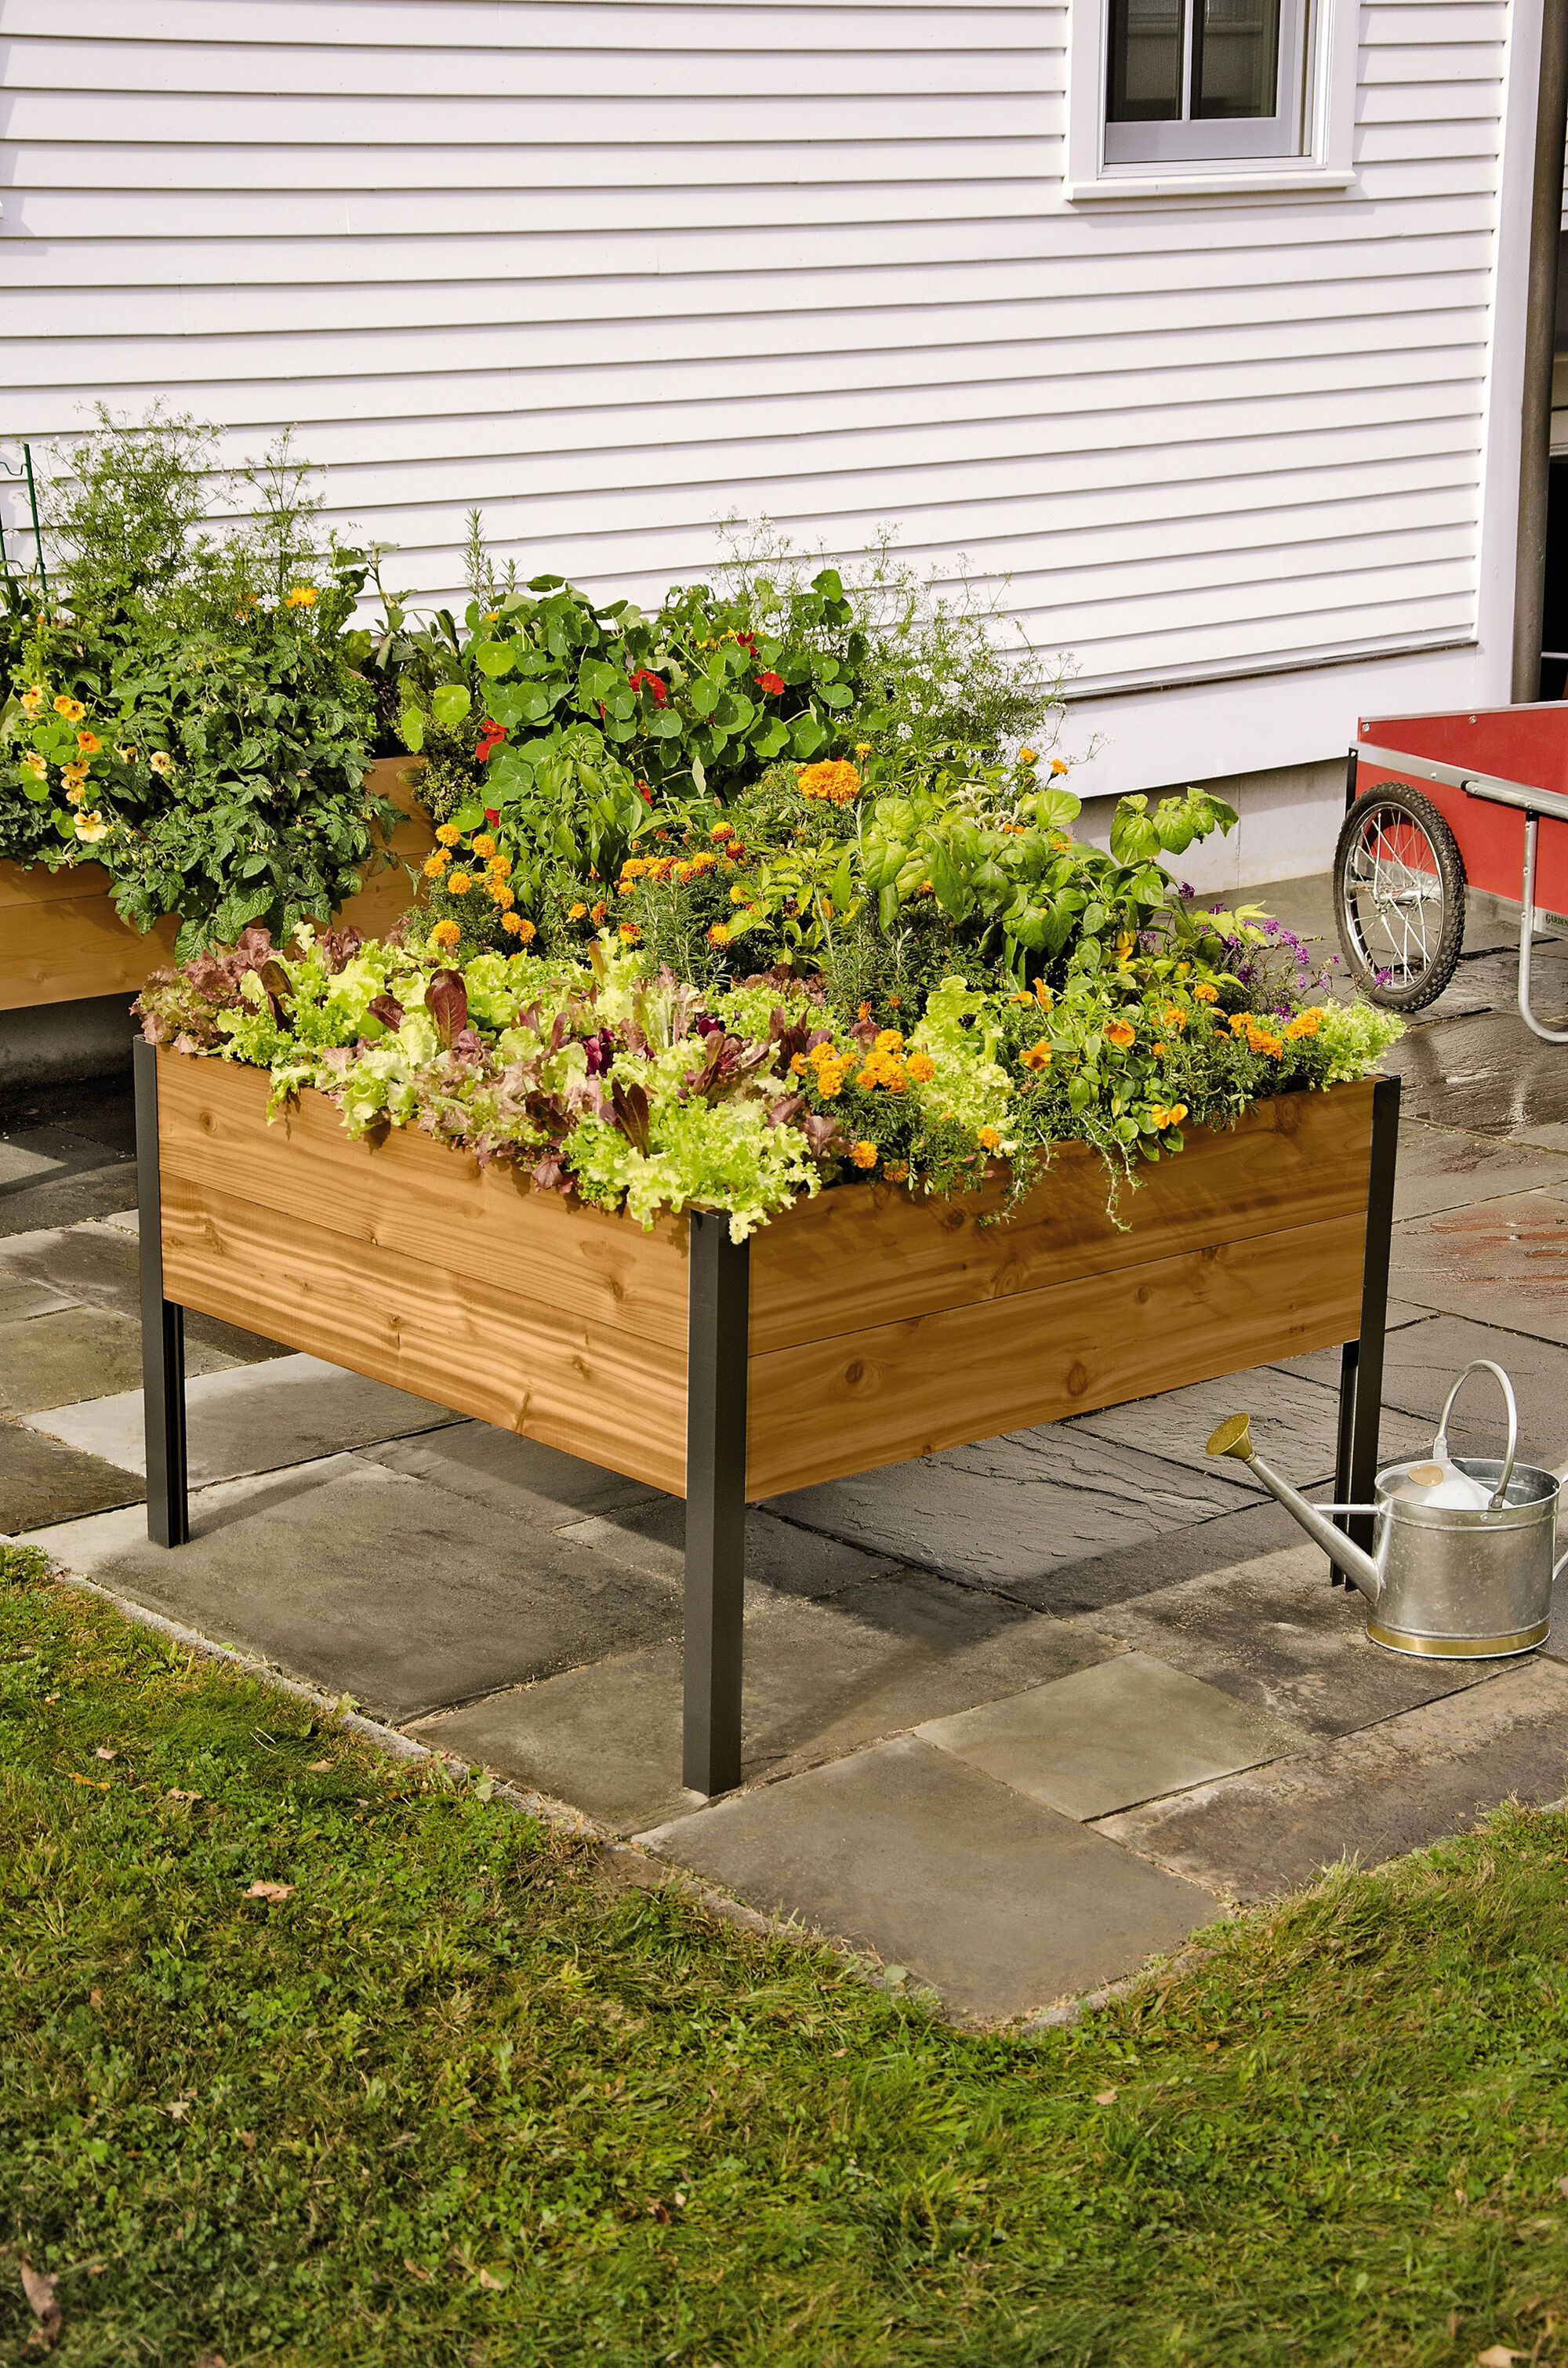 Raised Garden Beds Raised Bed Garden Raised Bed Gardening